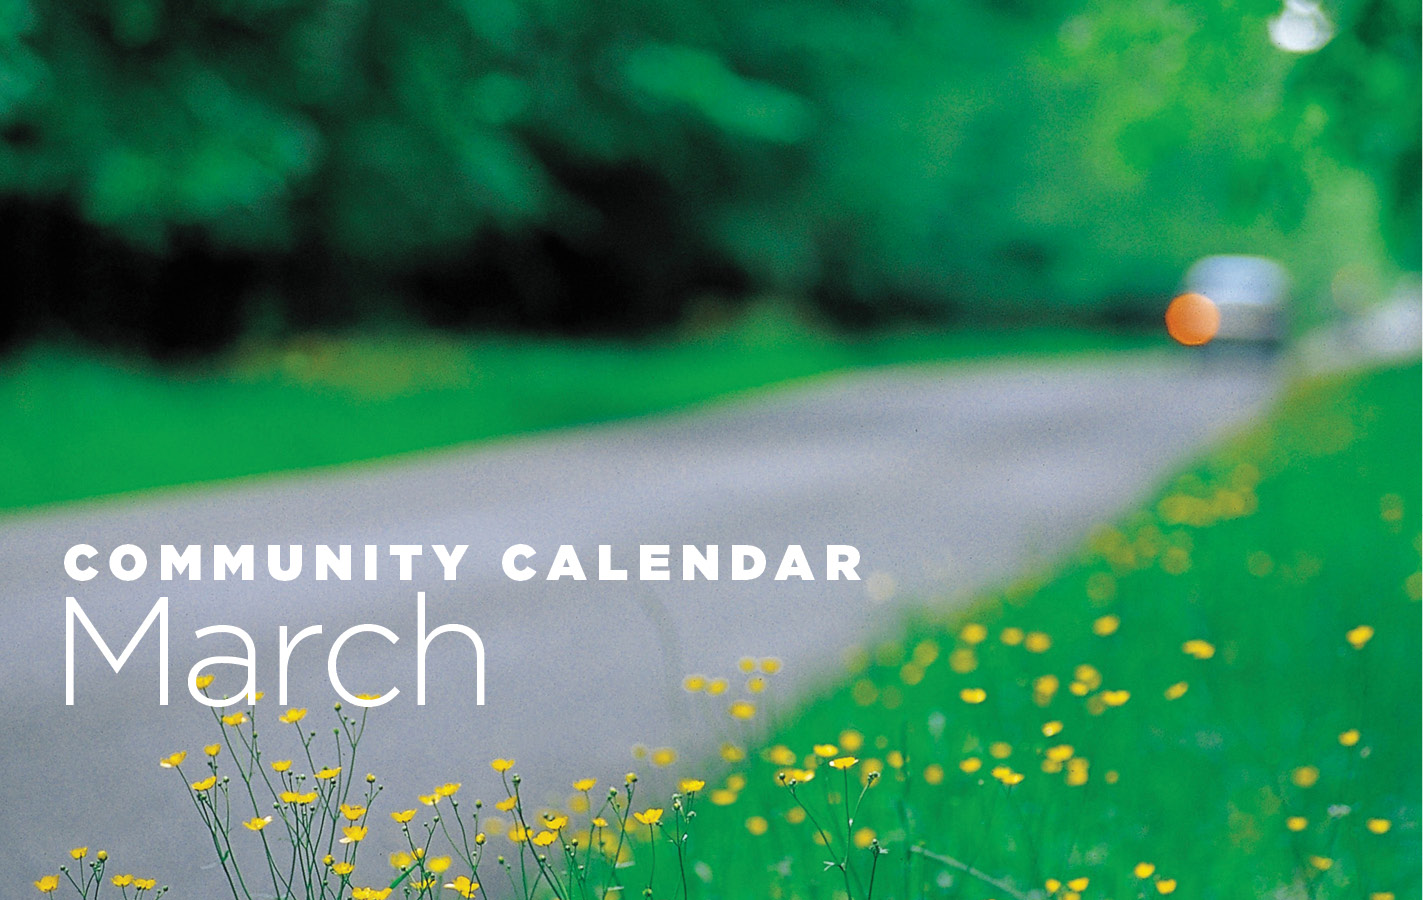 Community Calendar for March 2019